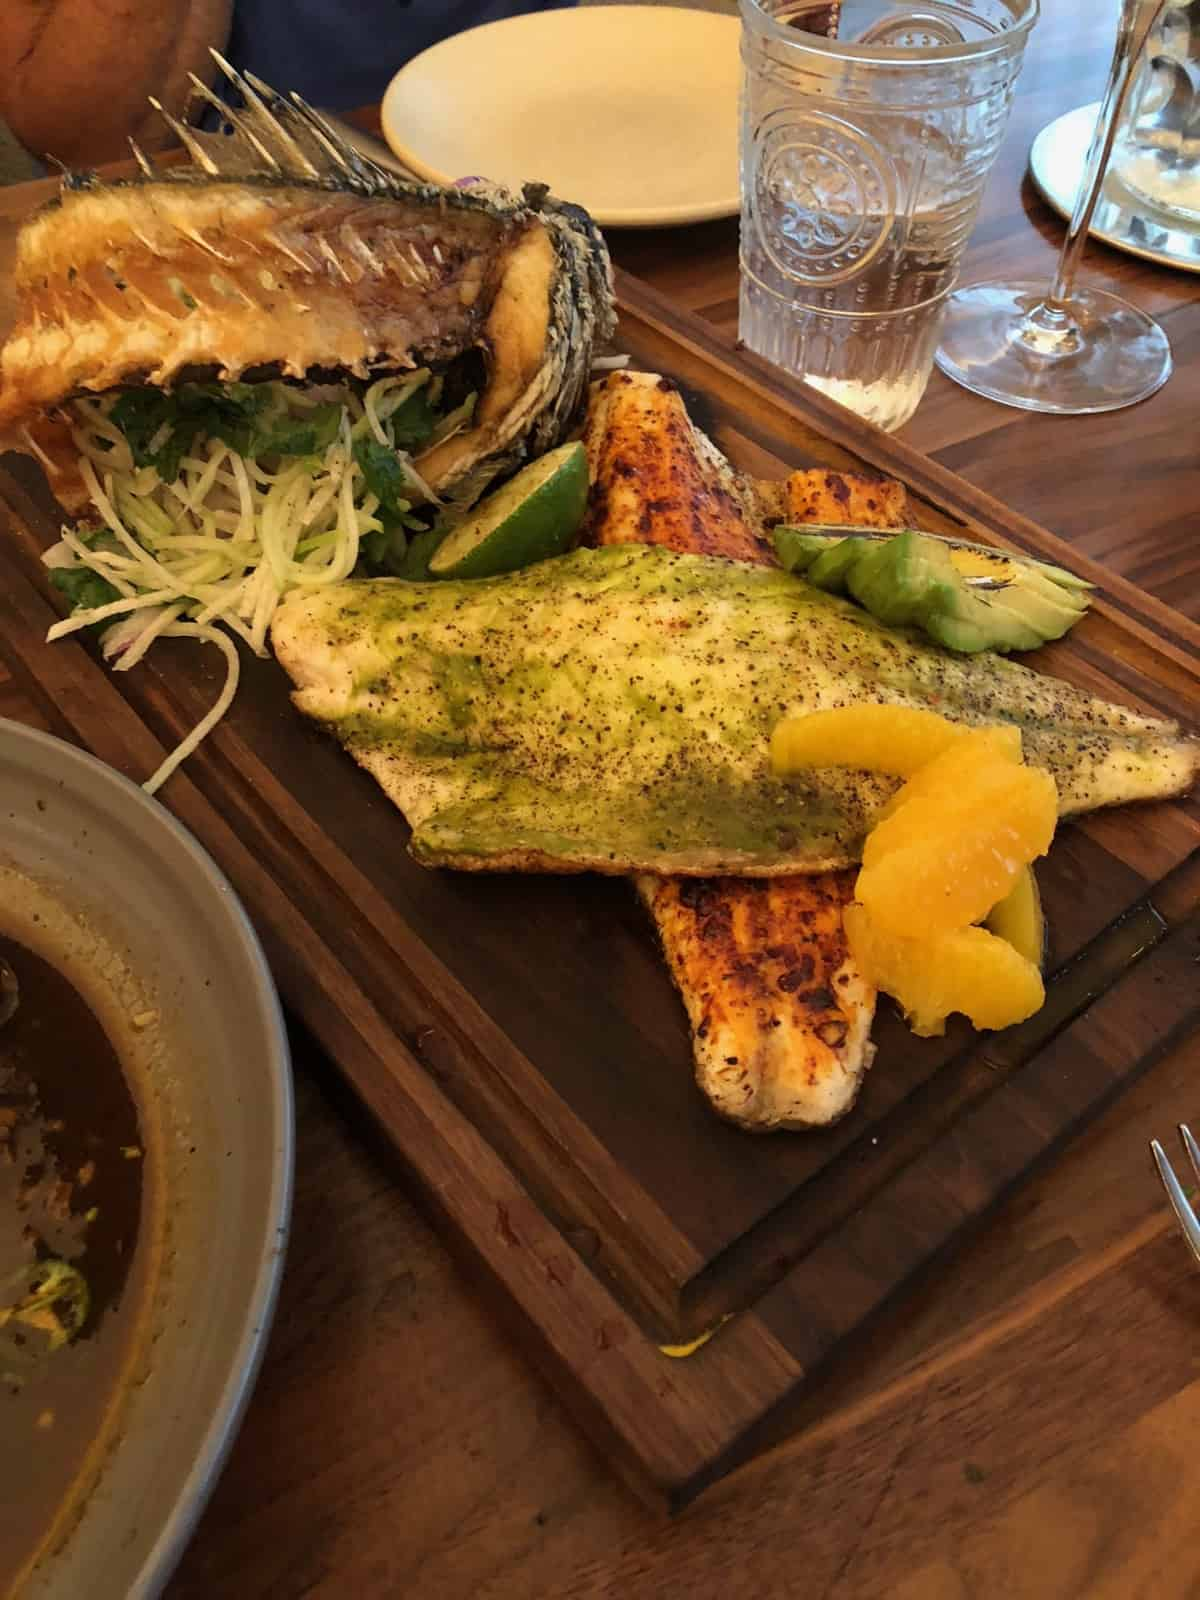 Cutting board with branzino two ways - one with a red sauce and one with a green sauce